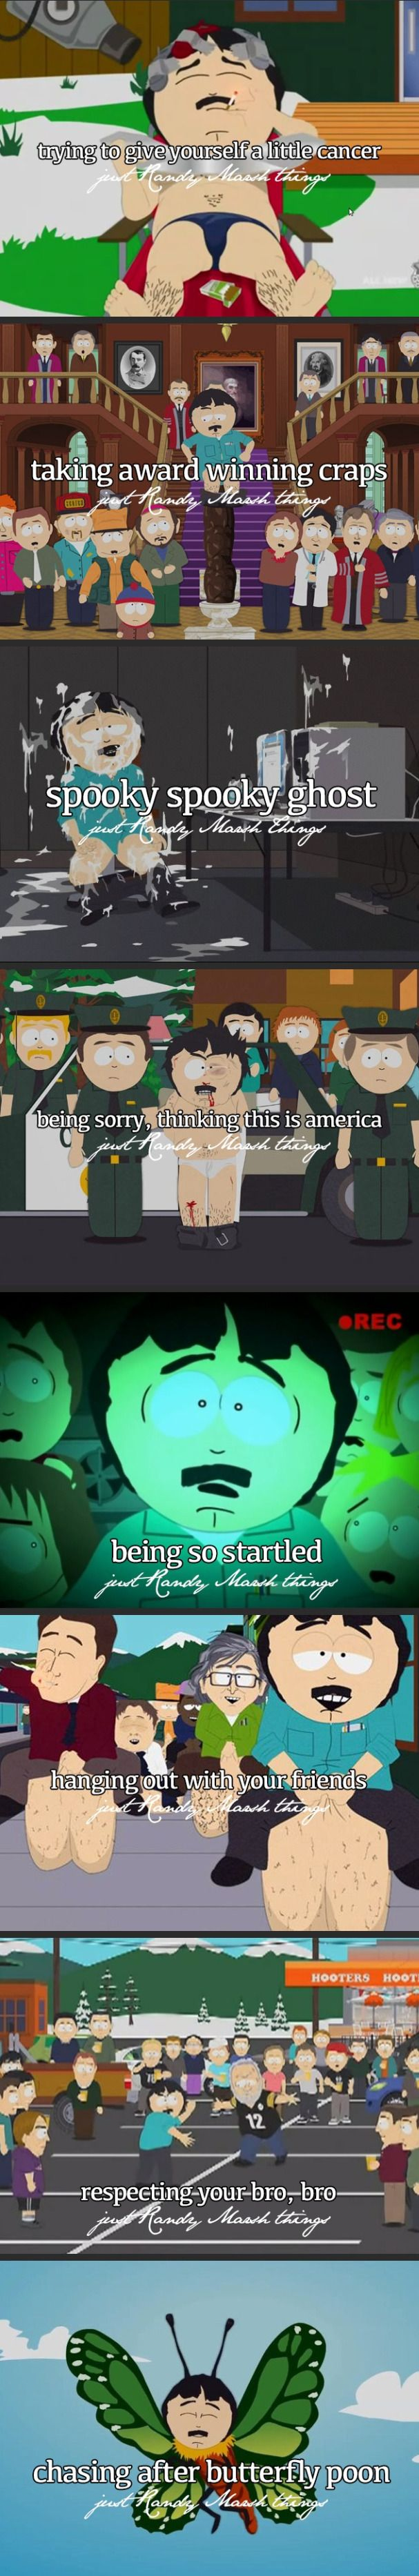 Just Randy Marsh things - http://limk.com/news/just-randy-marsh-things-081384471/